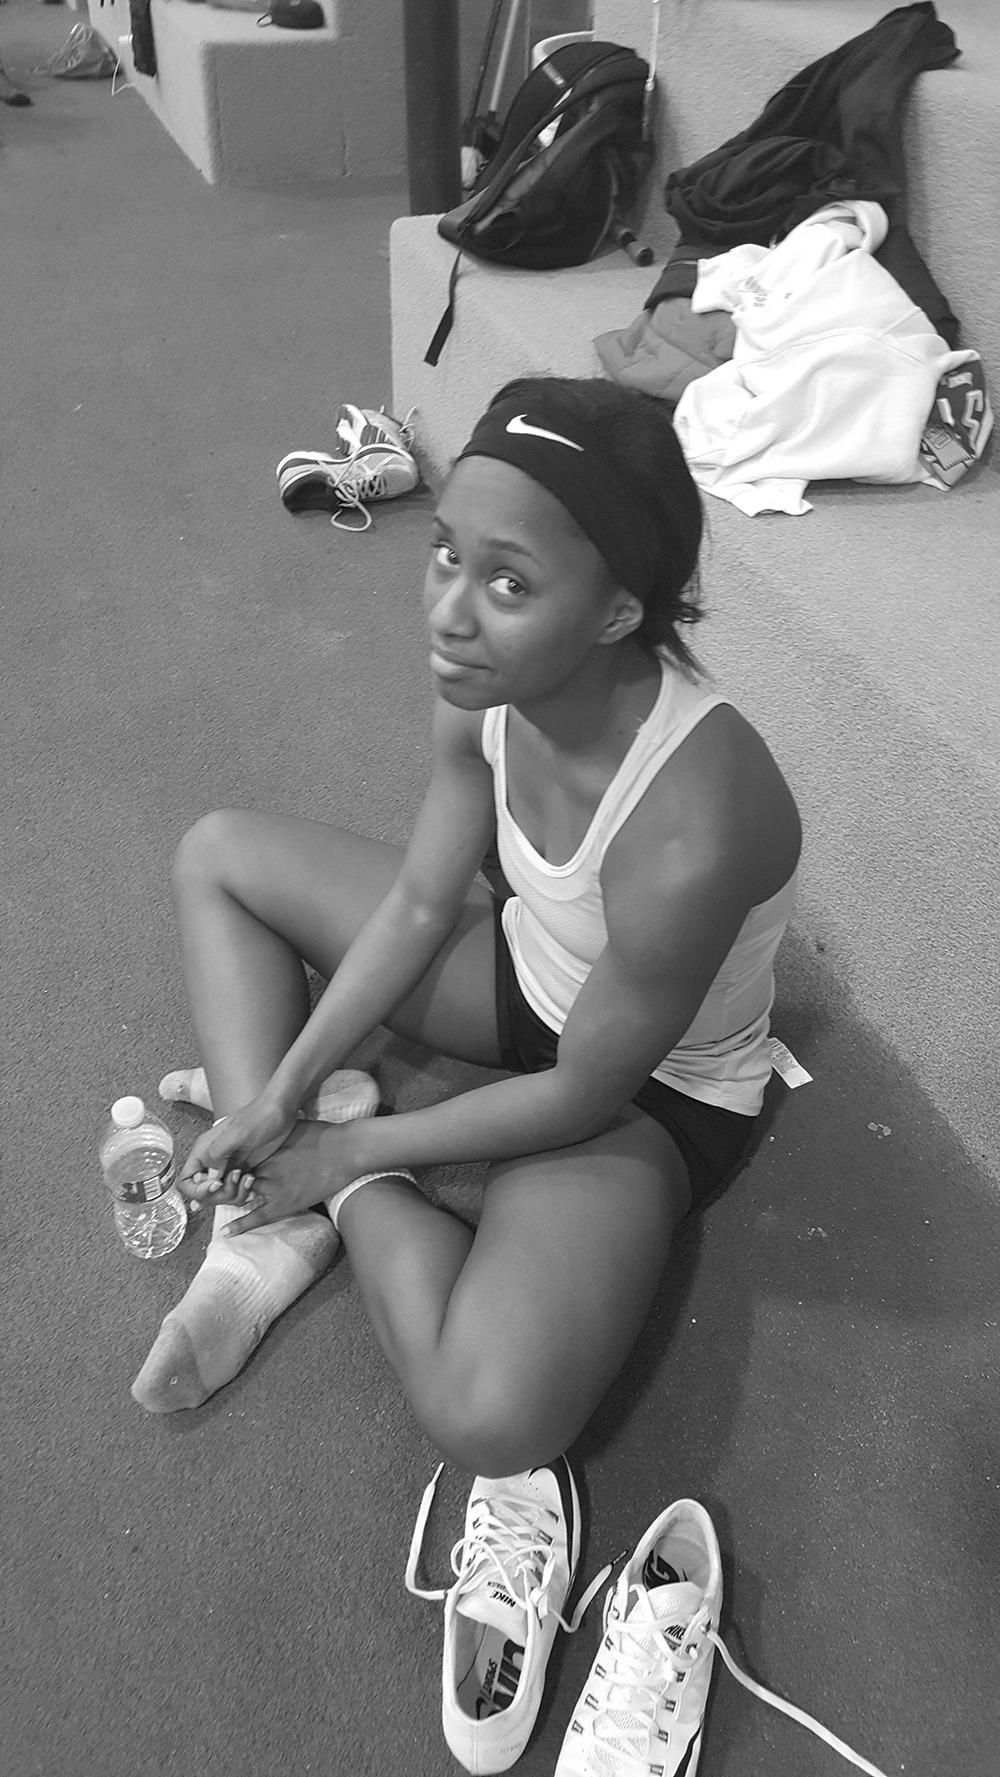 Ebony resting after a hard practice